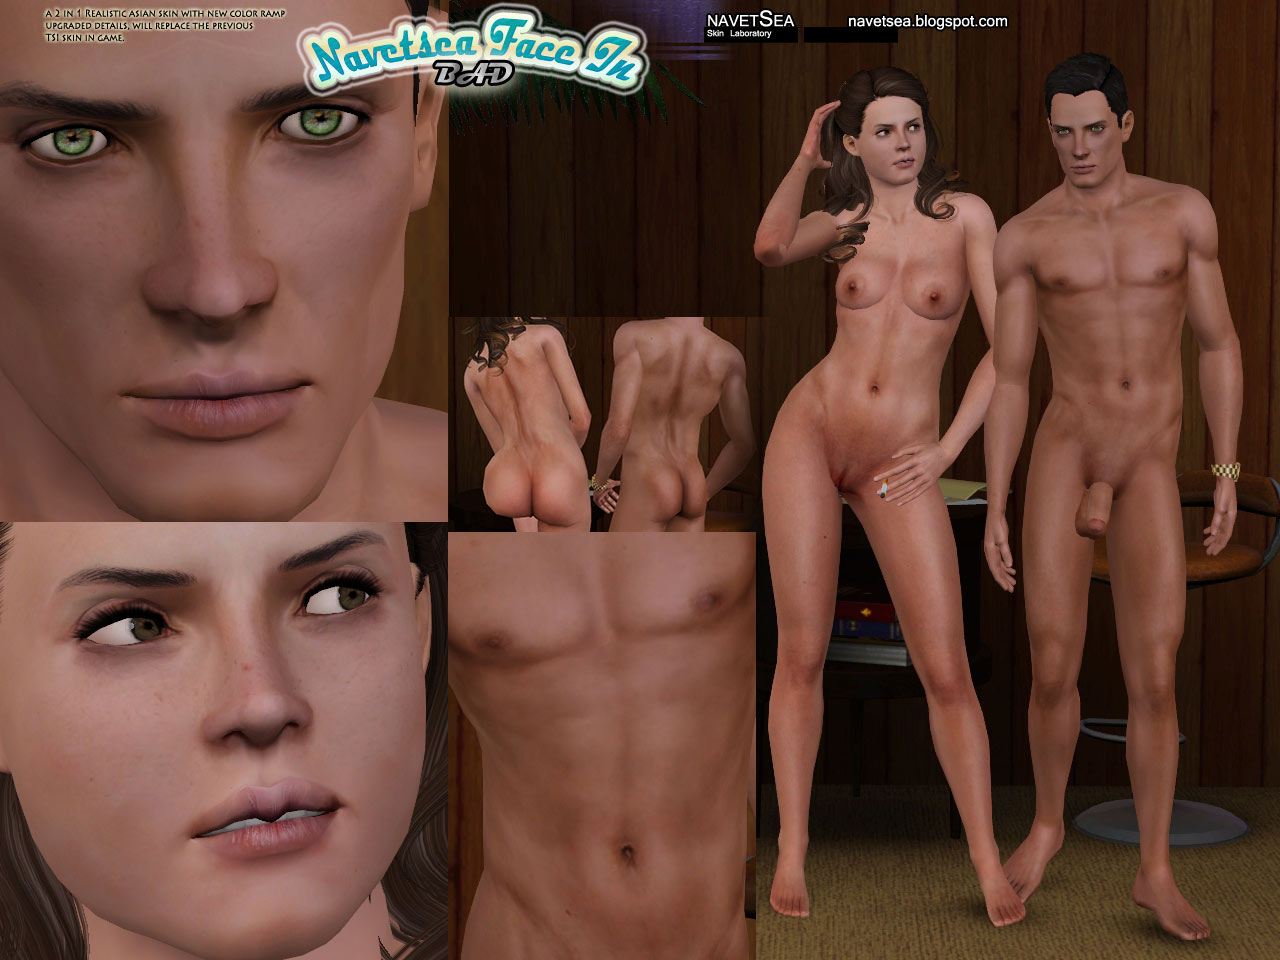 Sims 2 adult skins male nude porn photos